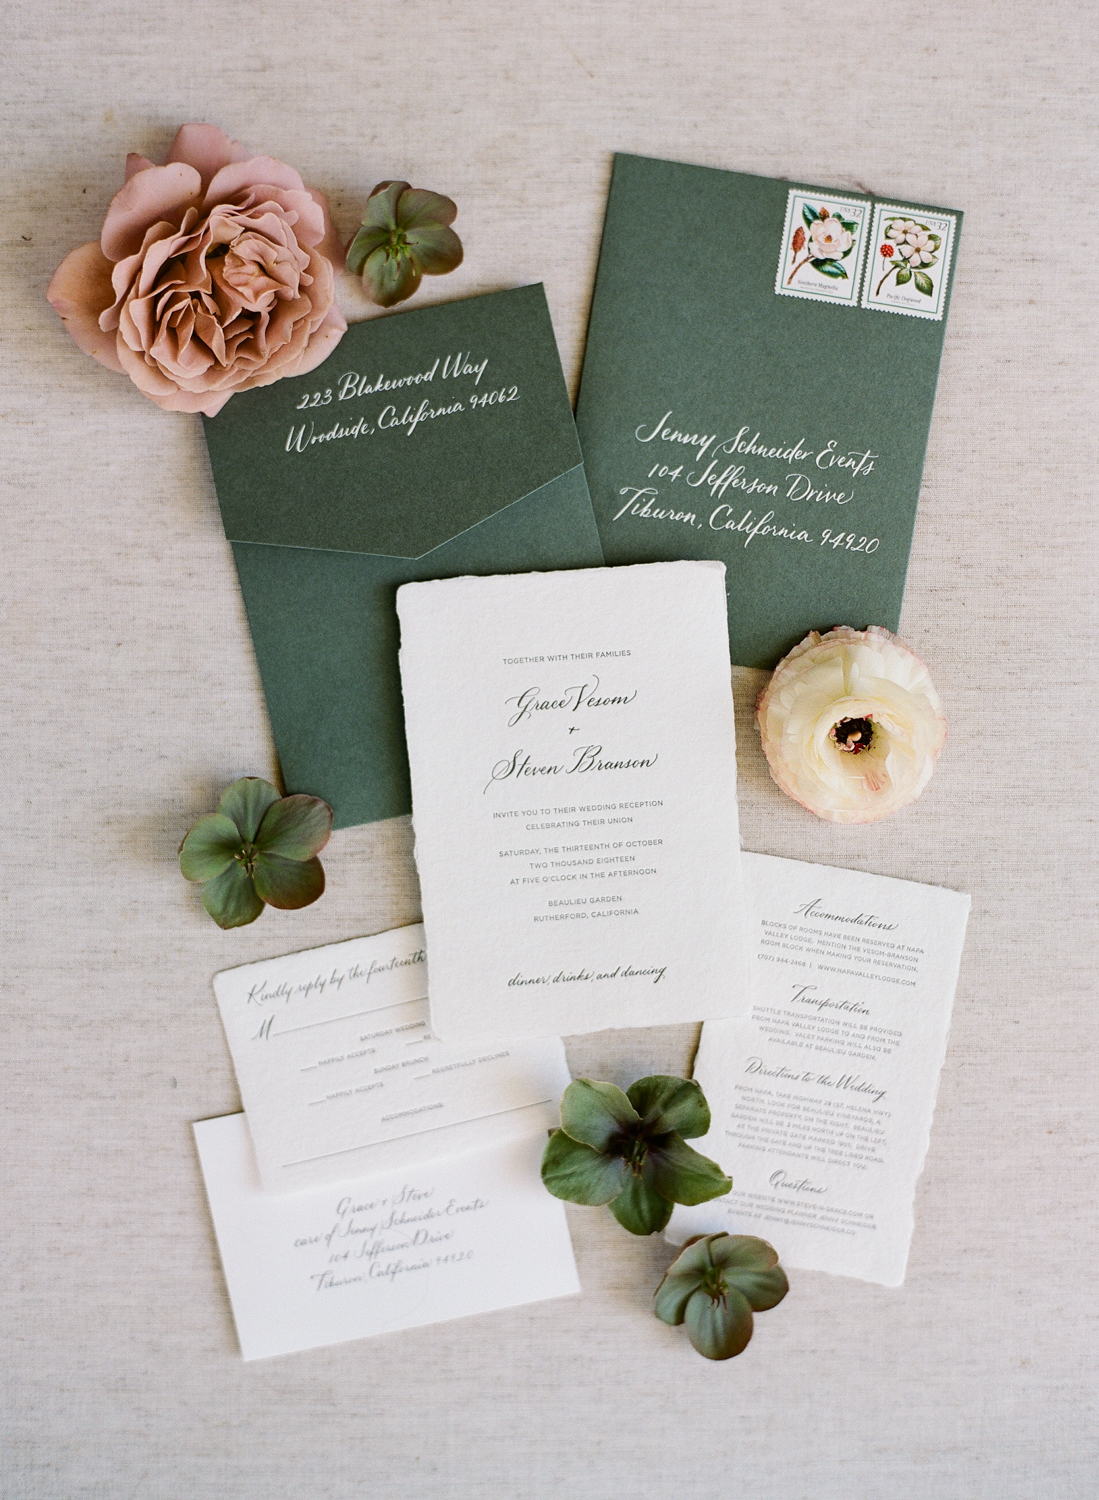 eggshell white deckle edged wedding stationary suit with forest green envelopes